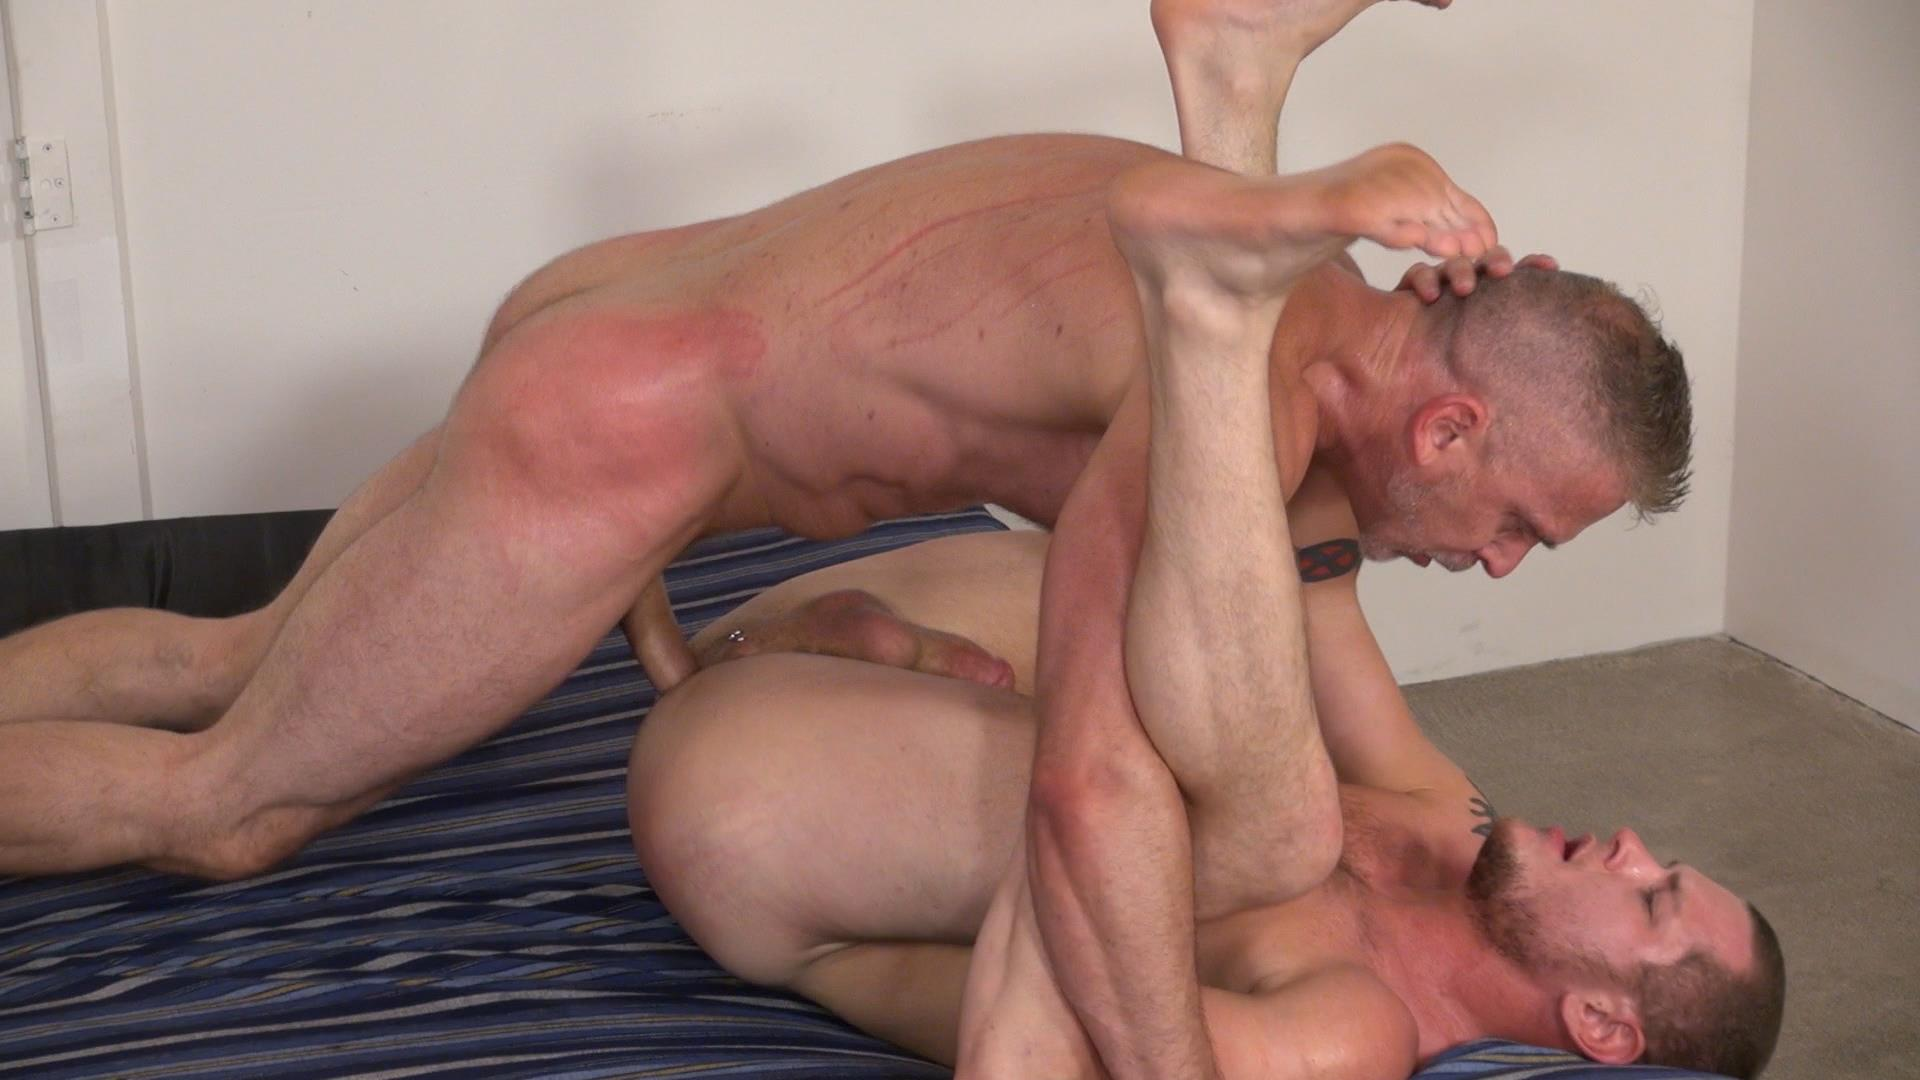 Raw-and-Rough-Sam-Dixon-and-Blue-Bailey-Daddy-And-Boy-Flip-Flip-Bareback-Fucking-Amateur-Gay-Porn-07 Blue Bailey Flip Flop Barebacking With A Hung Daddy